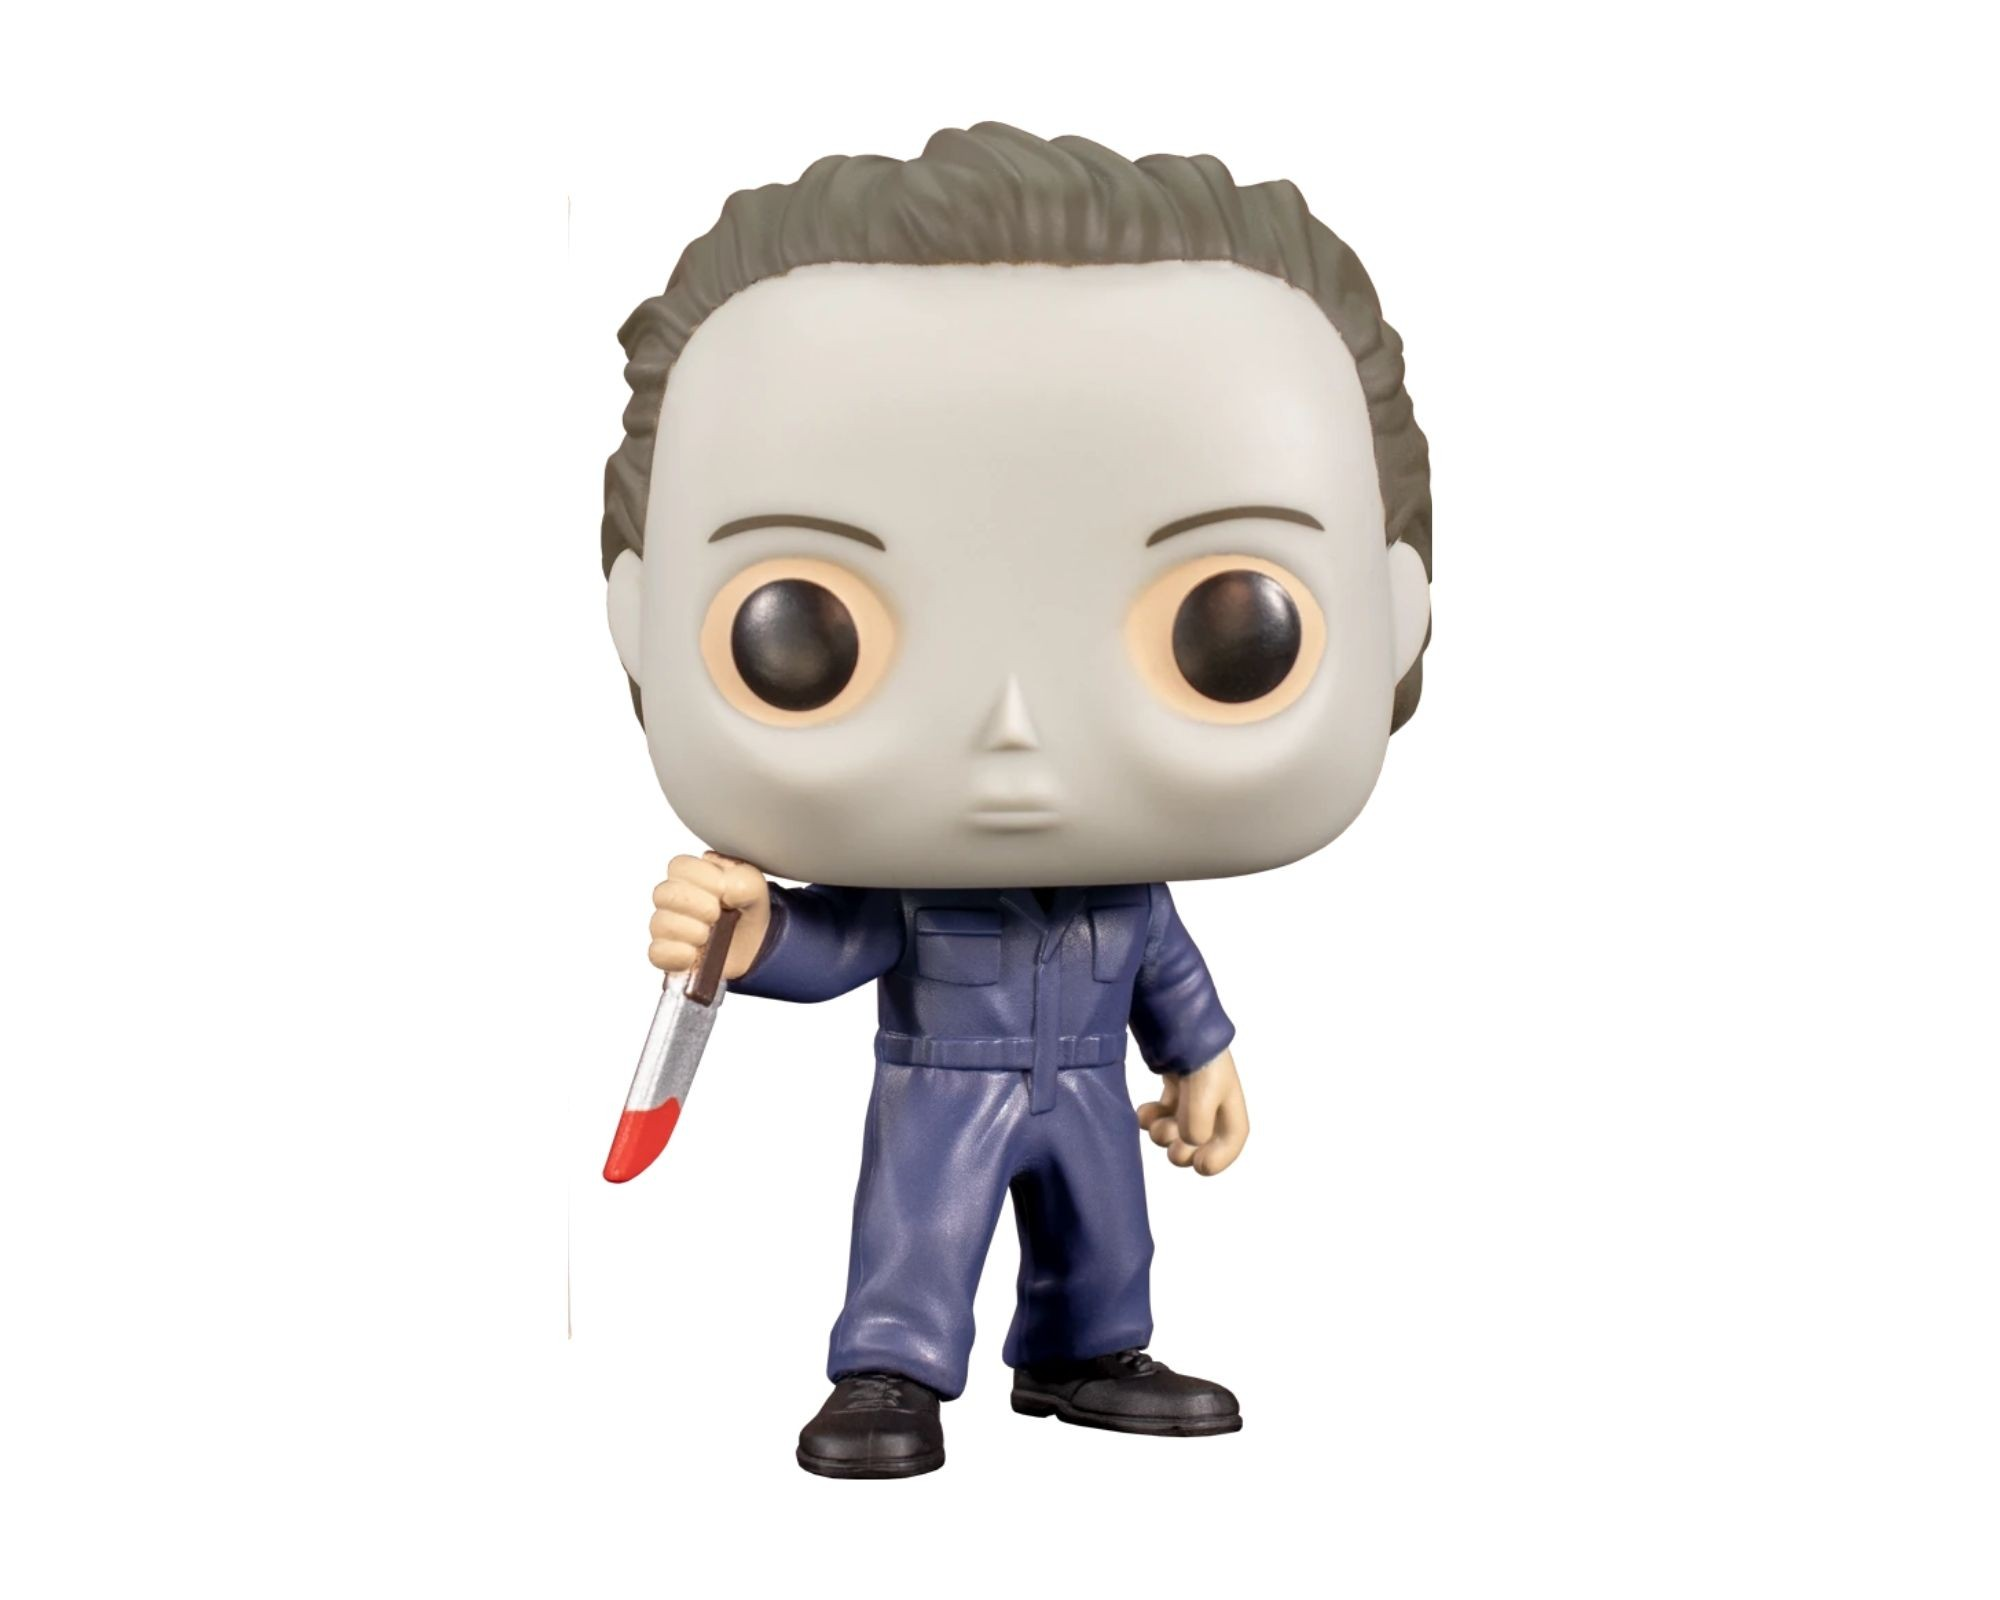 Funko Pop Michael Myers Horror Movies Exclusivo #831 - Game Land Brinquedos